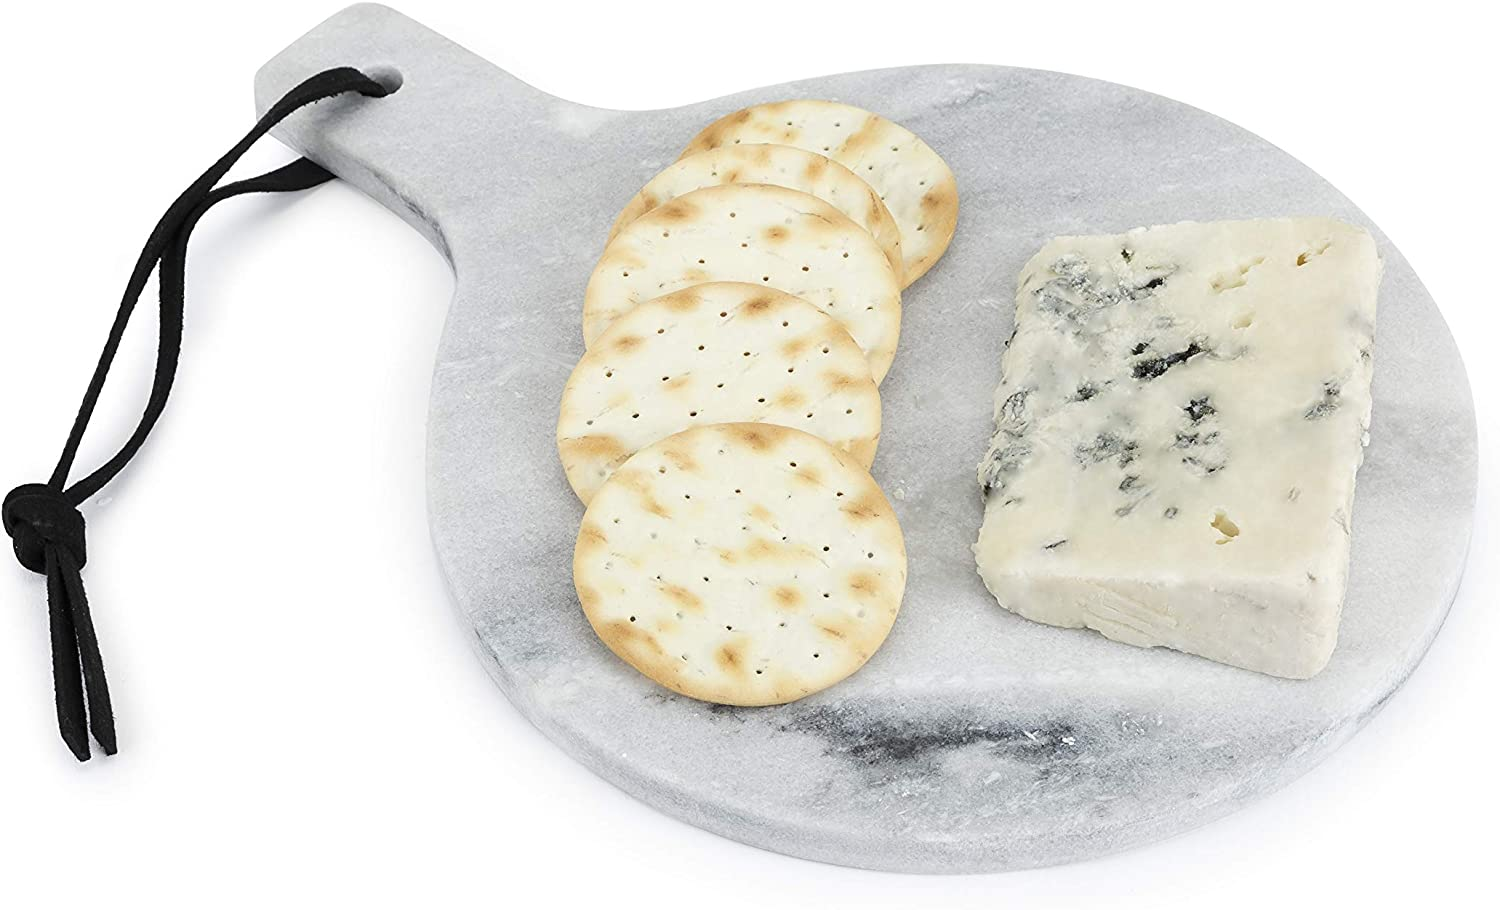 True Round Marble Cheese Plate Serveware Hanging Board, Serving Tray for Appetizers and Charcuterie, 8 Inch Diameter, Set of 1, Grey